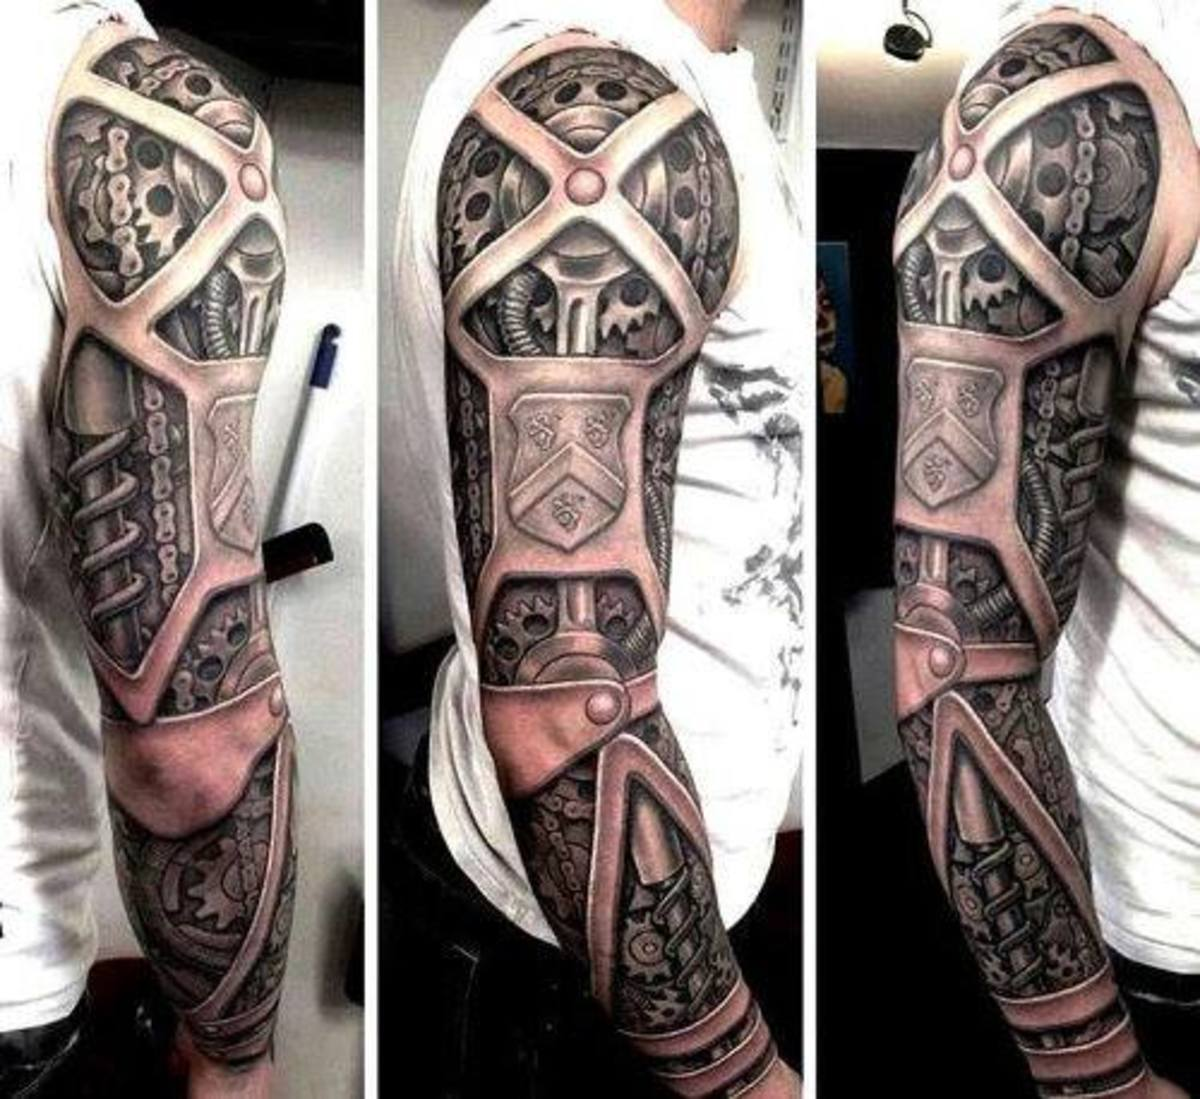 Biomechanic arm tattoo